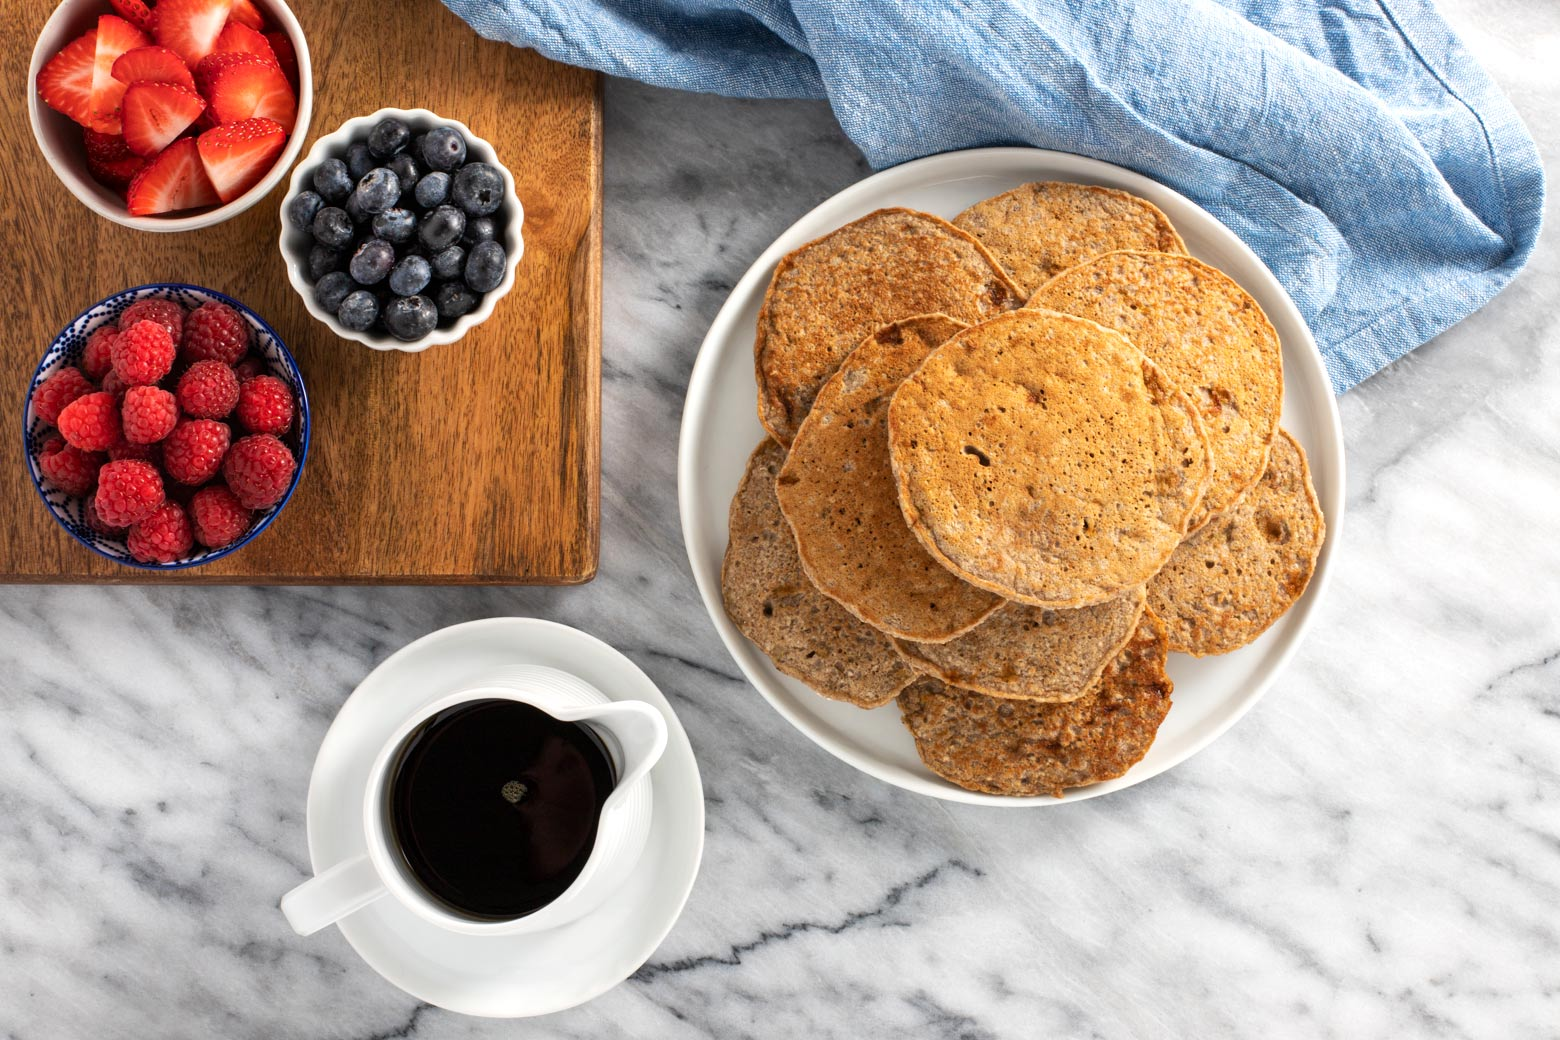 Stack of buckwheat banana pancakes with fresh berries and maple syrup.